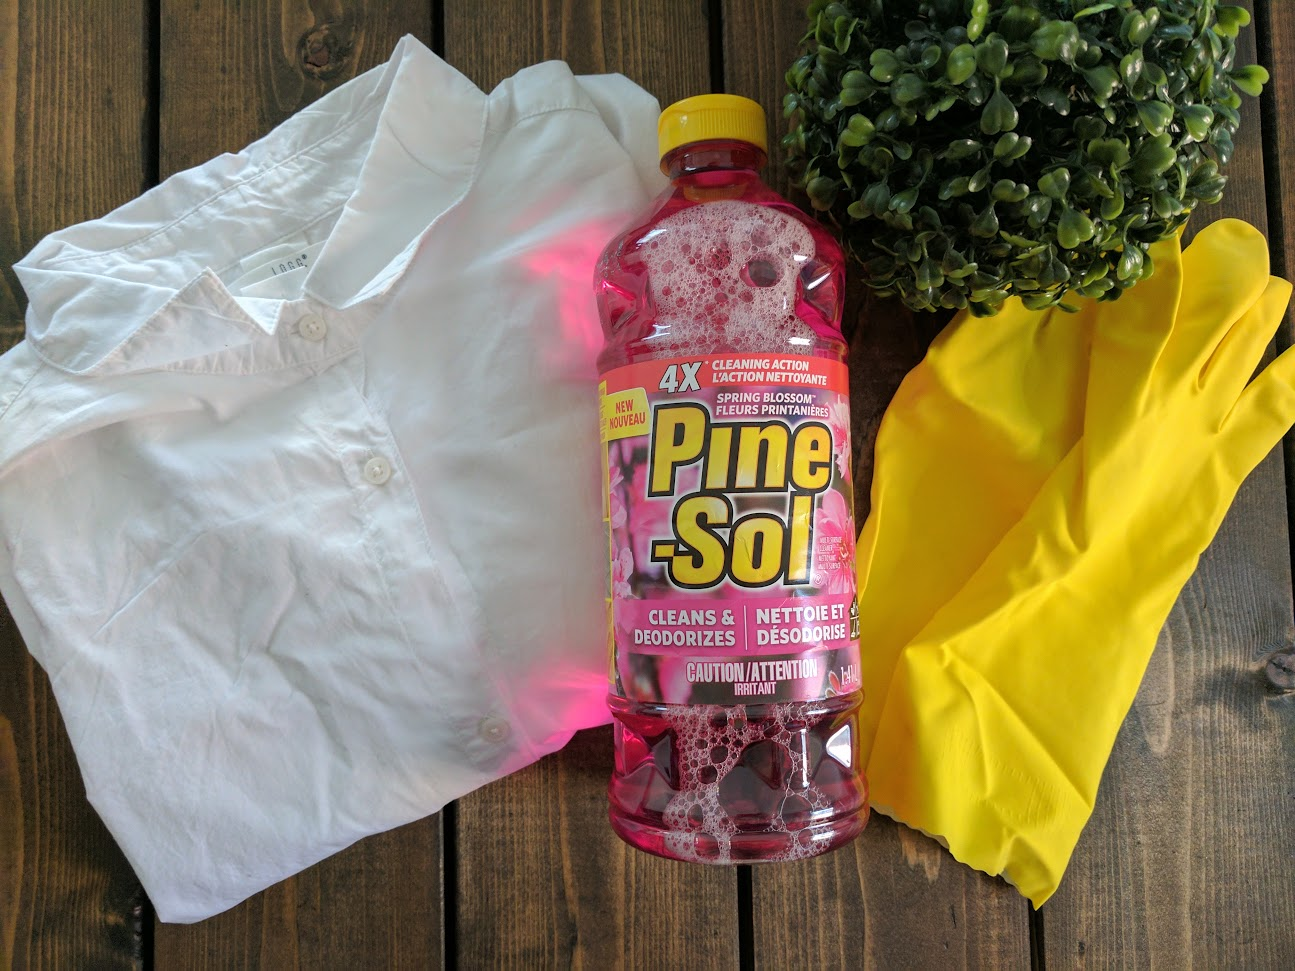 Bringing Spring In With the New Pine-Sol Spring Blossom + Free Printable